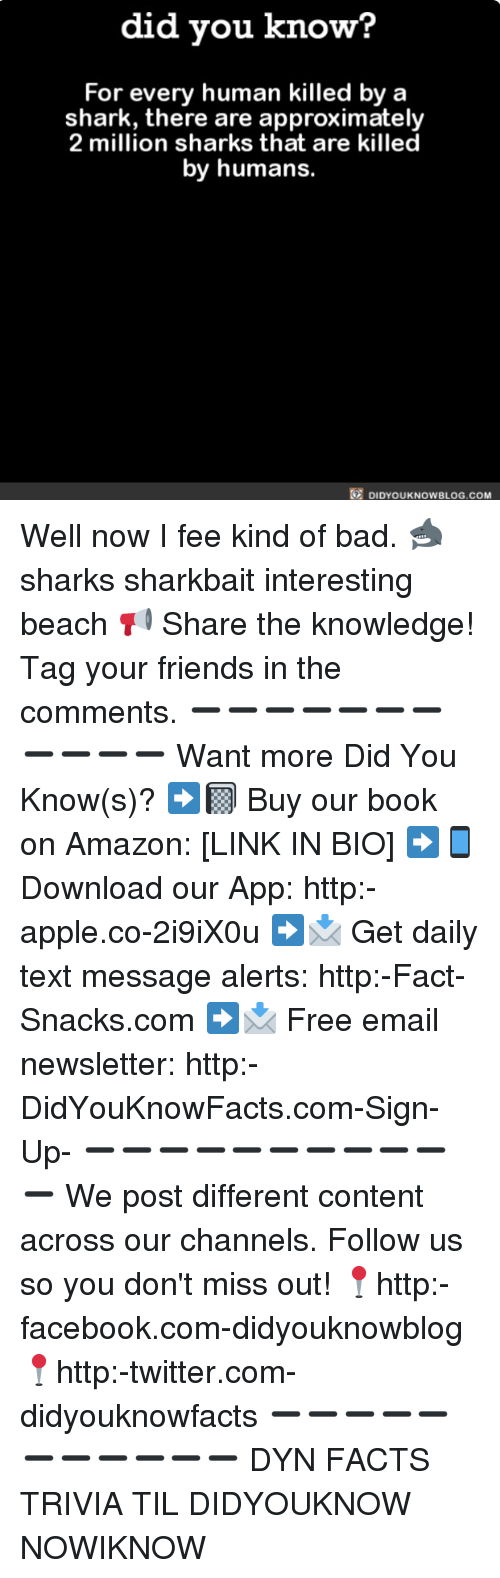 sharking: did you know?  For every human killed by a  shark, there are approximately  2 million sharks that are killed  by humans.  DIDYOUKNOWBLOG.COM Well now I fee kind of bad. 🦈 sharks sharkbait interesting beach 📢 Share the knowledge! Tag your friends in the comments. ➖➖➖➖➖➖➖➖➖➖➖ Want more Did You Know(s)? ➡📓 Buy our book on Amazon: [LINK IN BIO] ➡📱 Download our App: http:-apple.co-2i9iX0u ➡📩 Get daily text message alerts: http:-Fact-Snacks.com ➡📩 Free email newsletter: http:-DidYouKnowFacts.com-Sign-Up- ➖➖➖➖➖➖➖➖➖➖➖ We post different content across our channels. Follow us so you don't miss out! 📍http:-facebook.com-didyouknowblog 📍http:-twitter.com-didyouknowfacts ➖➖➖➖➖➖➖➖➖➖➖ DYN FACTS TRIVIA TIL DIDYOUKNOW NOWIKNOW